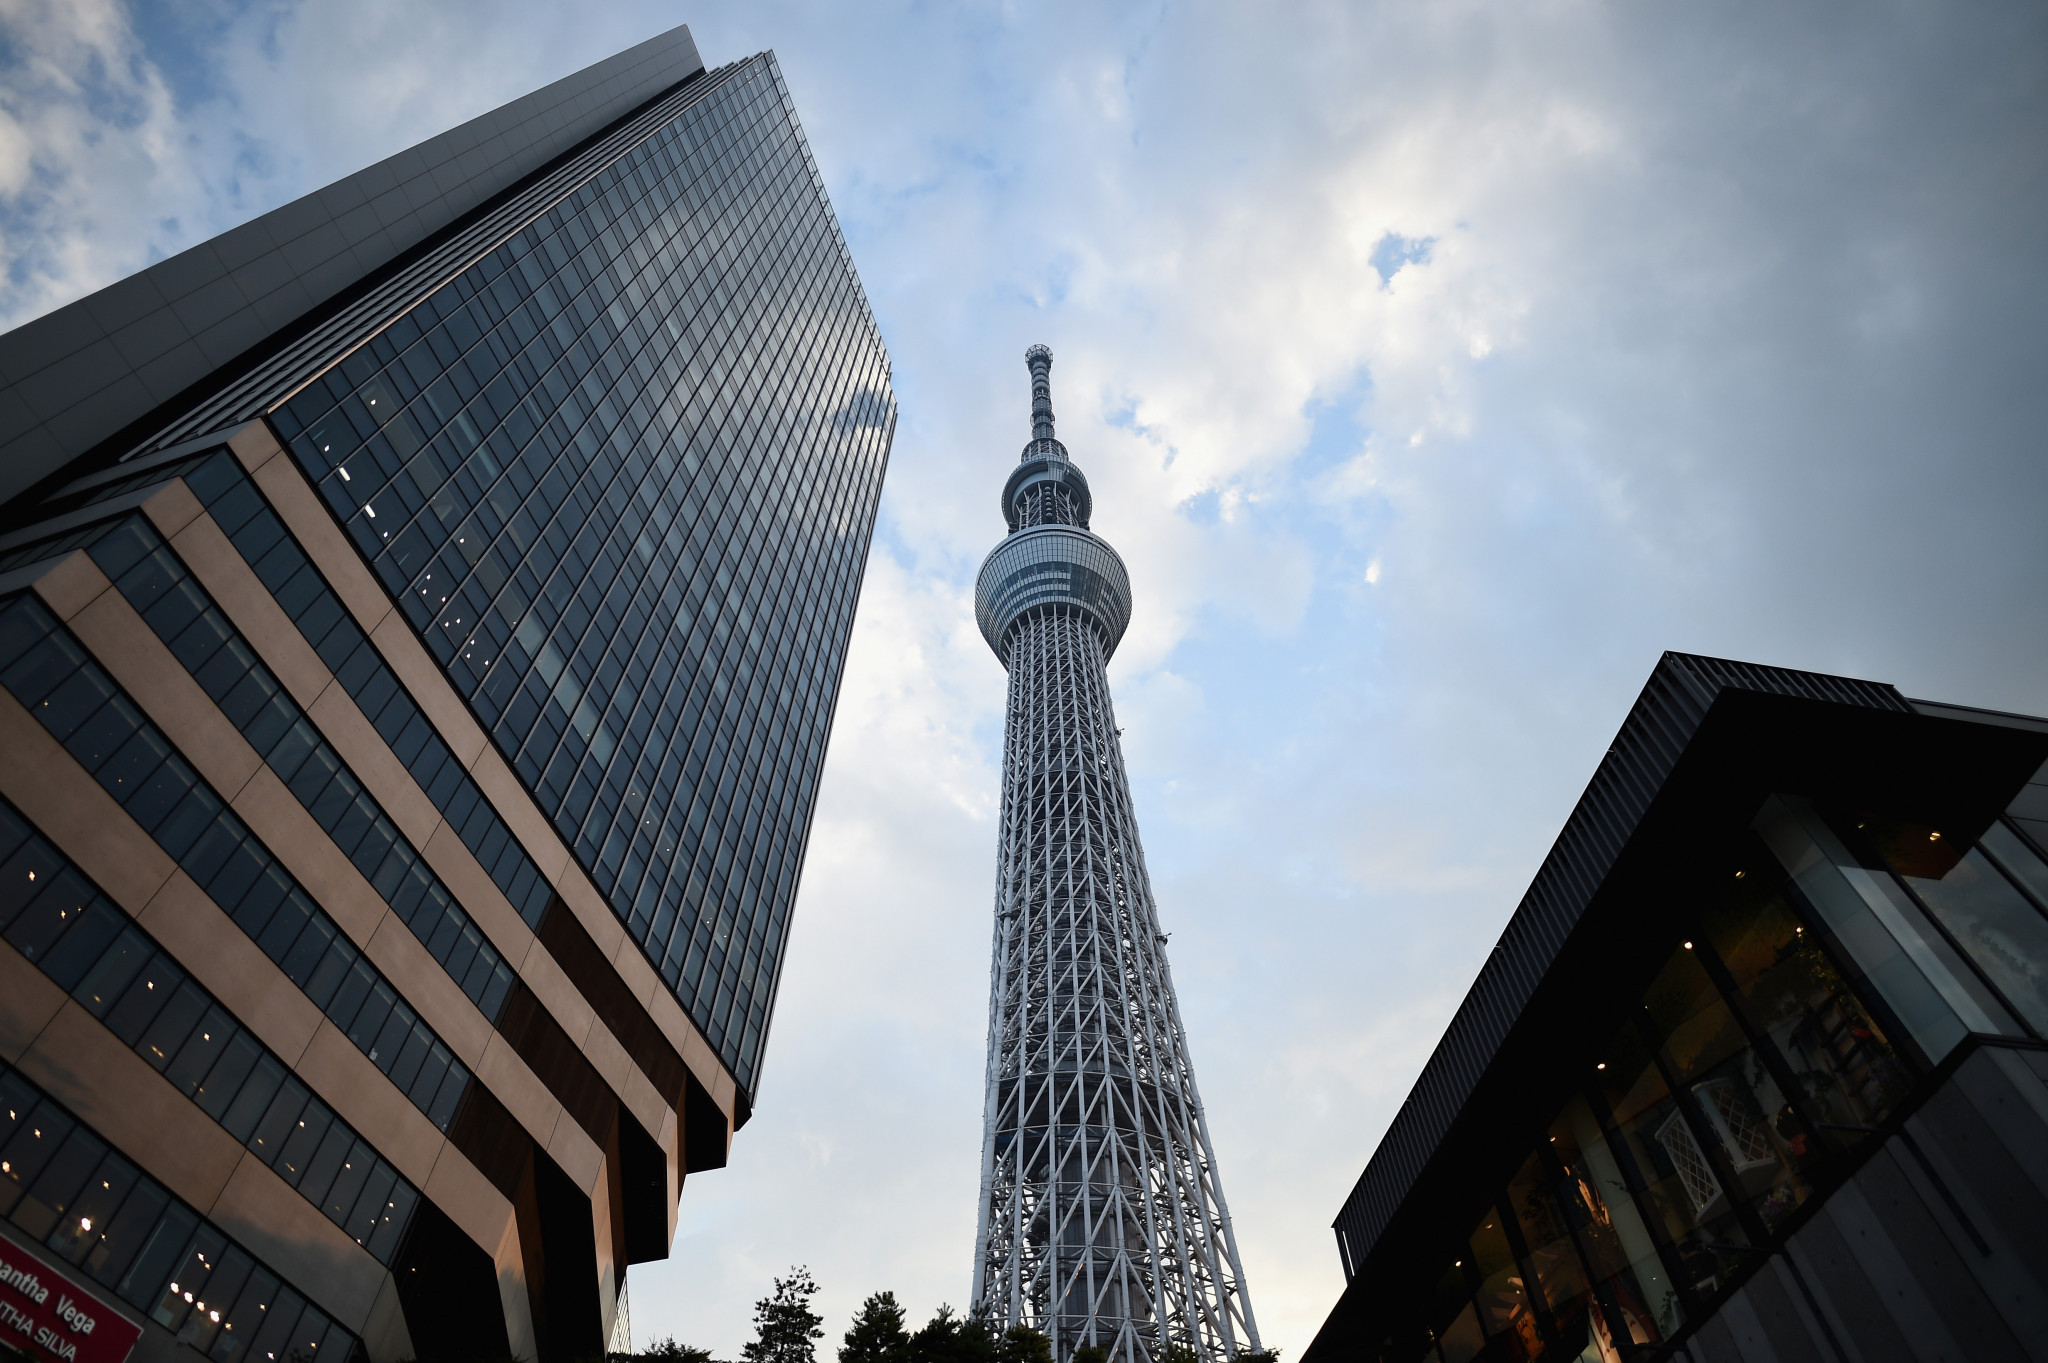 Tokyo 2020 has announced a deal with Tokyo Skytree ©Getty Images